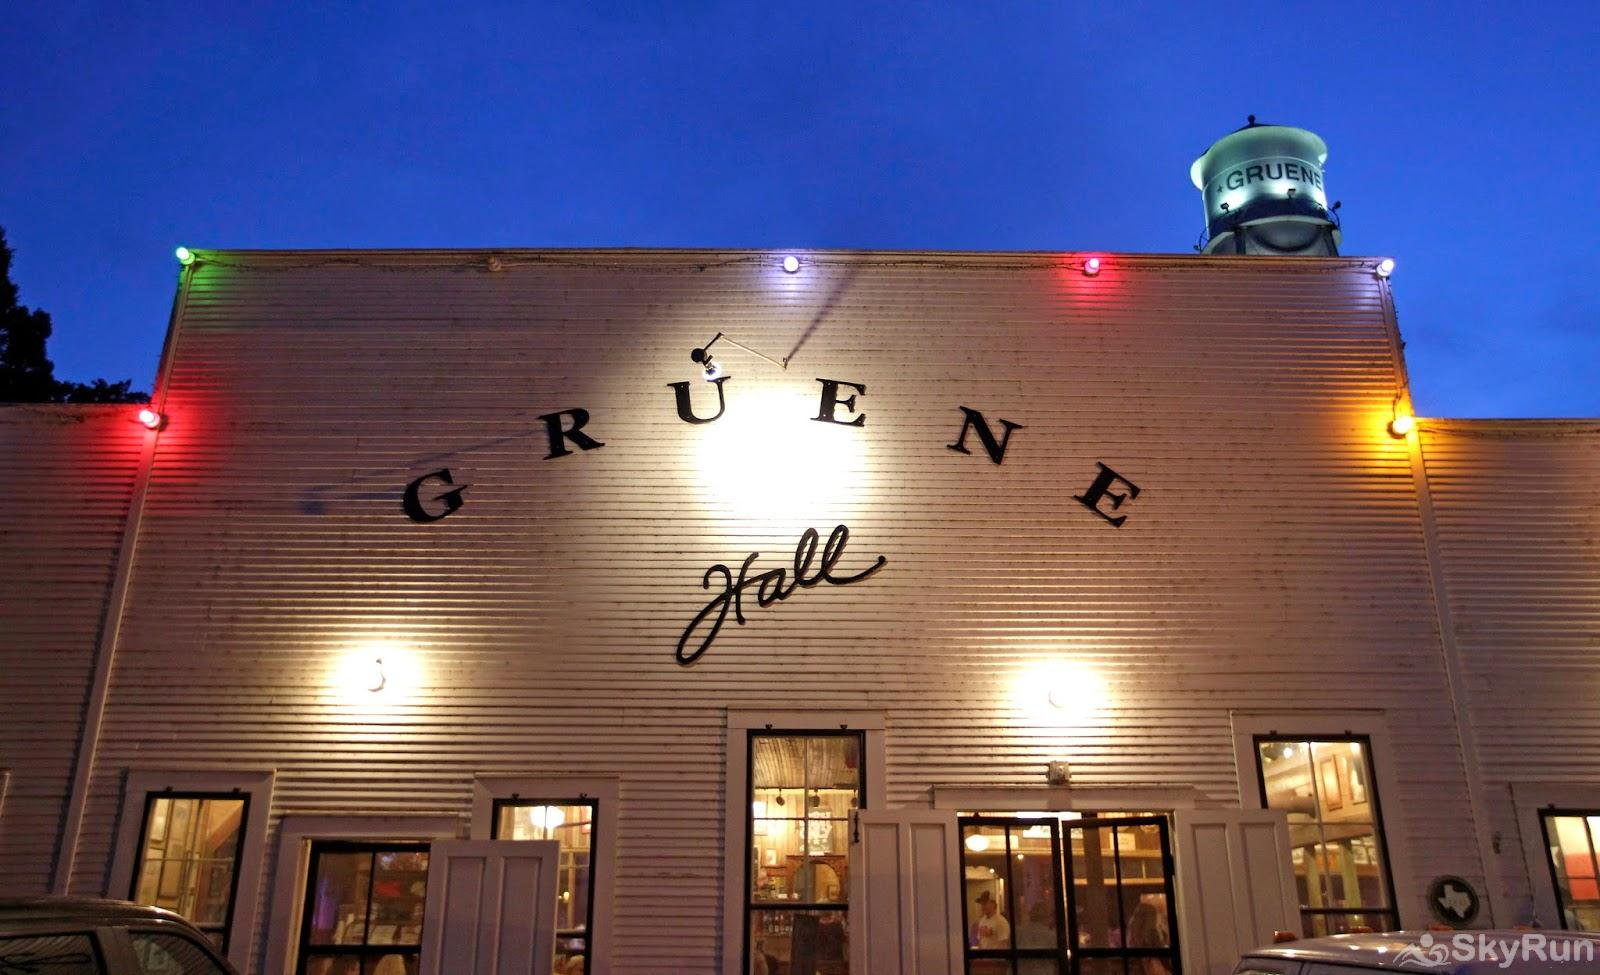 WATER'S EDGE RETREAT Gruene Hall in nearby New Braunfels